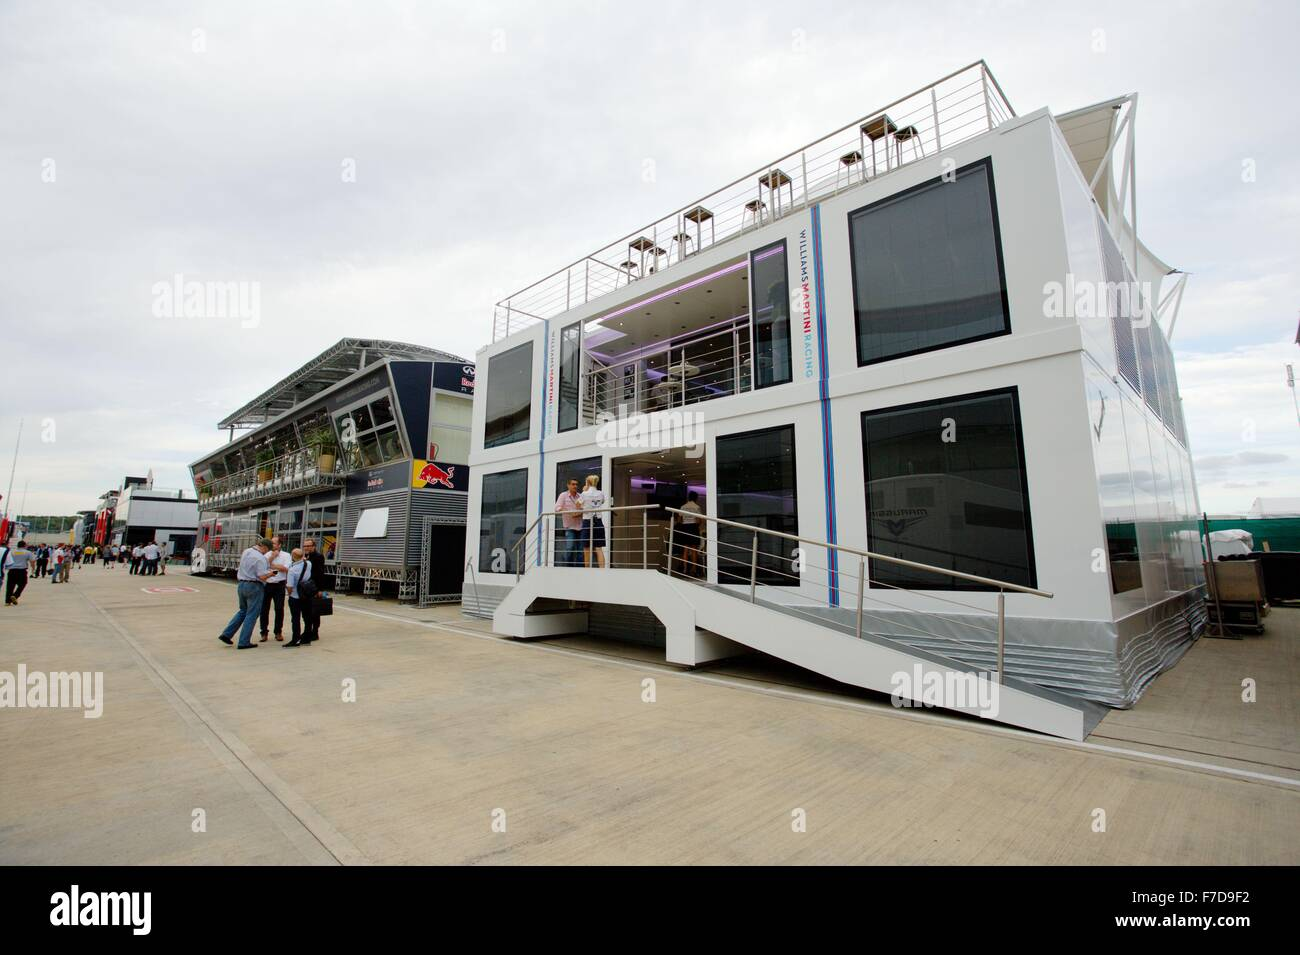 The Williams Martini Racing motorhome in the Paddock at Silverstone circuit. The motorhome's first outing - Stock Image